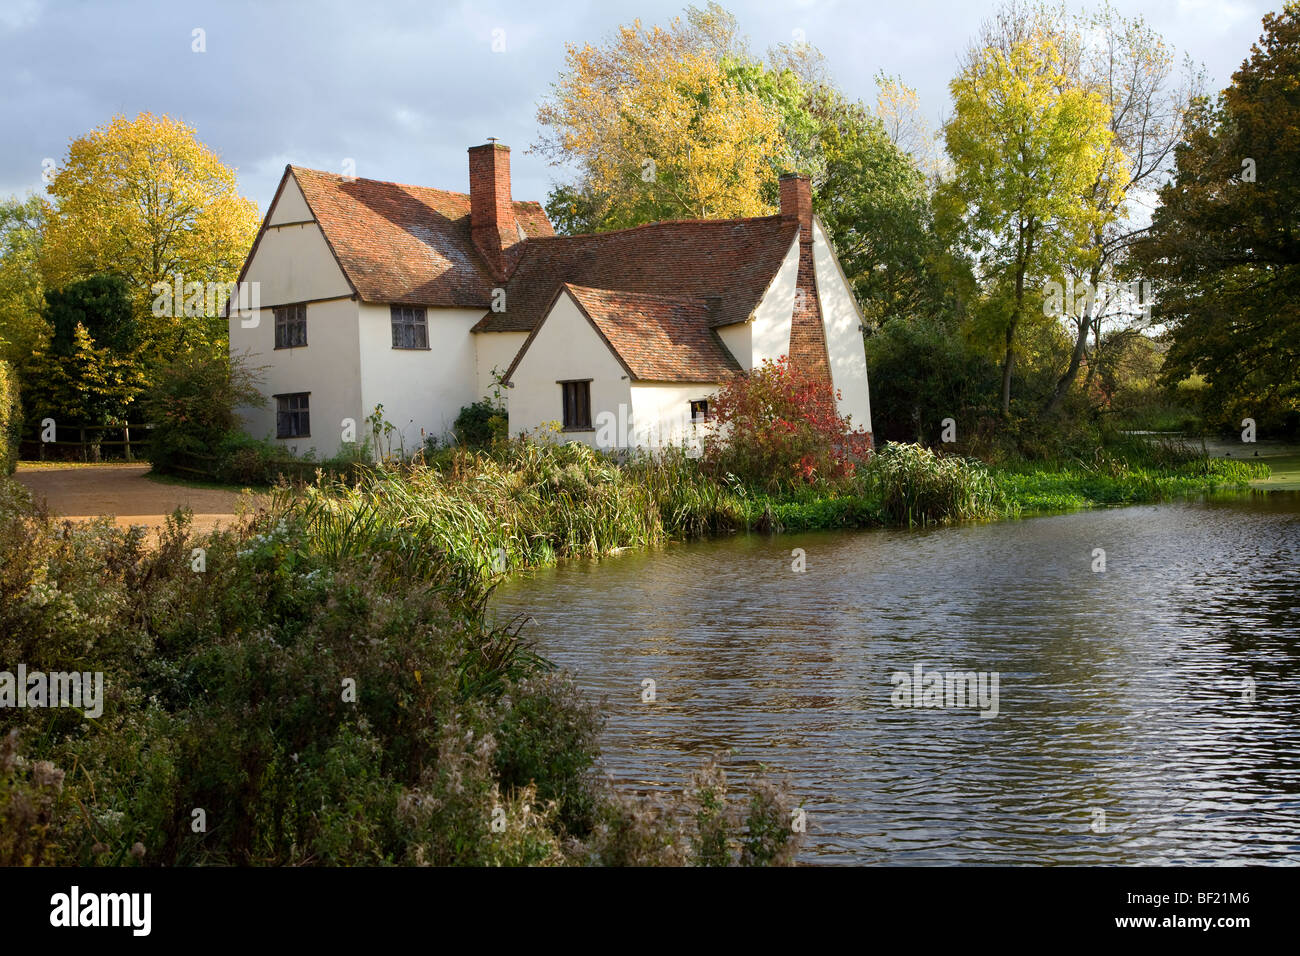 Fall Cottage Wallpaper Willy Lott Lott S Cottage House Flatford Mill Dedham Vale